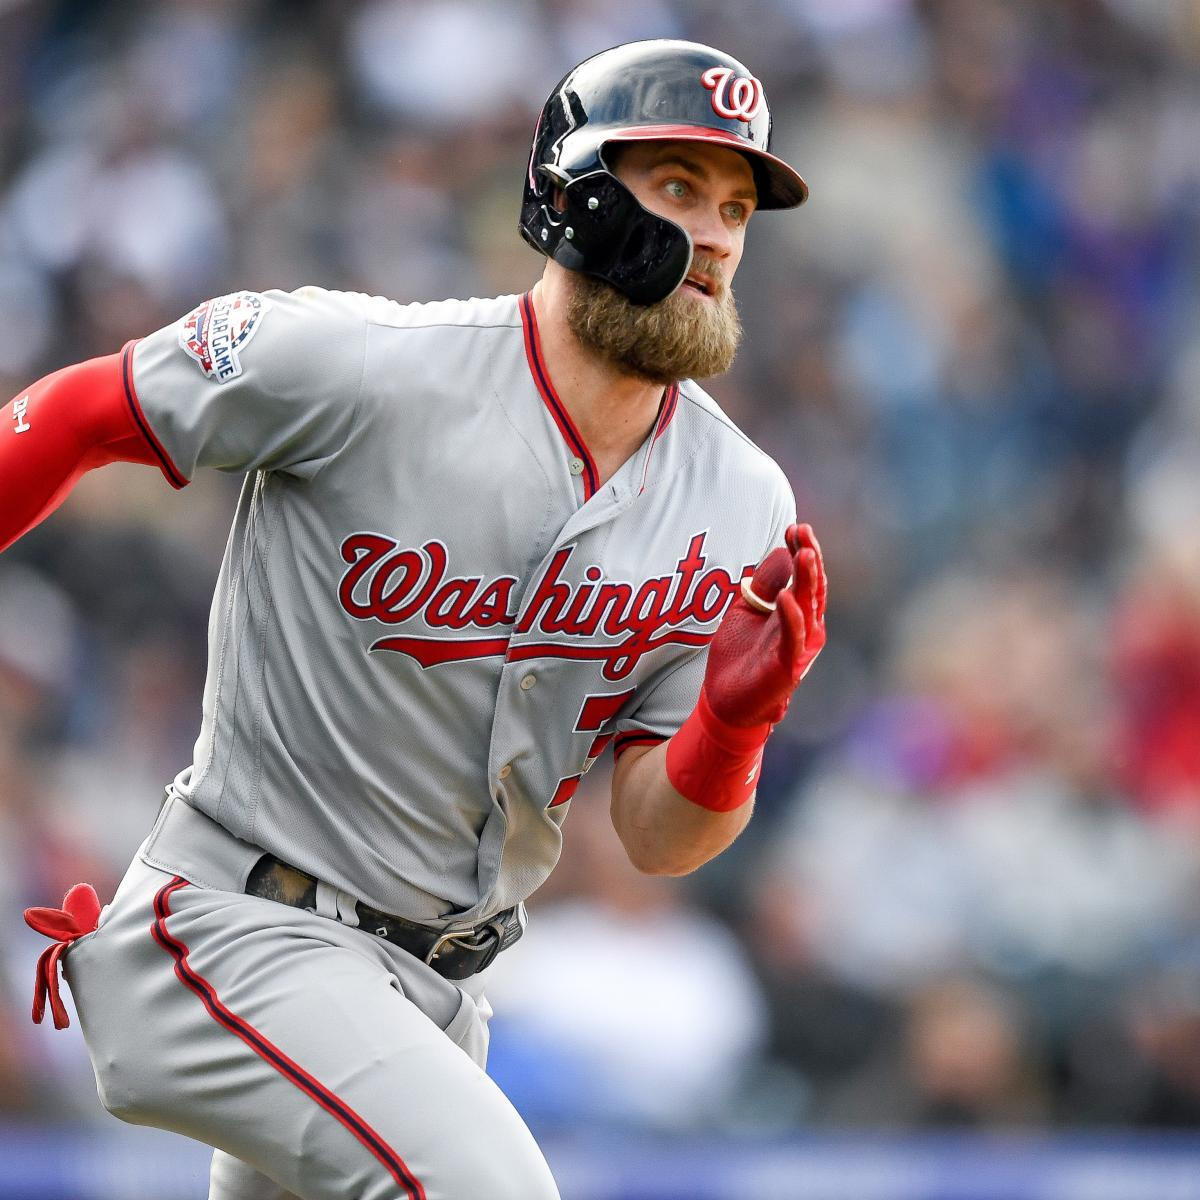 Mlb Rumors Analyzing All The Latest Whispers News And: MLB Rumors: Latest Buzz On Bryce Harper, Yankees And More